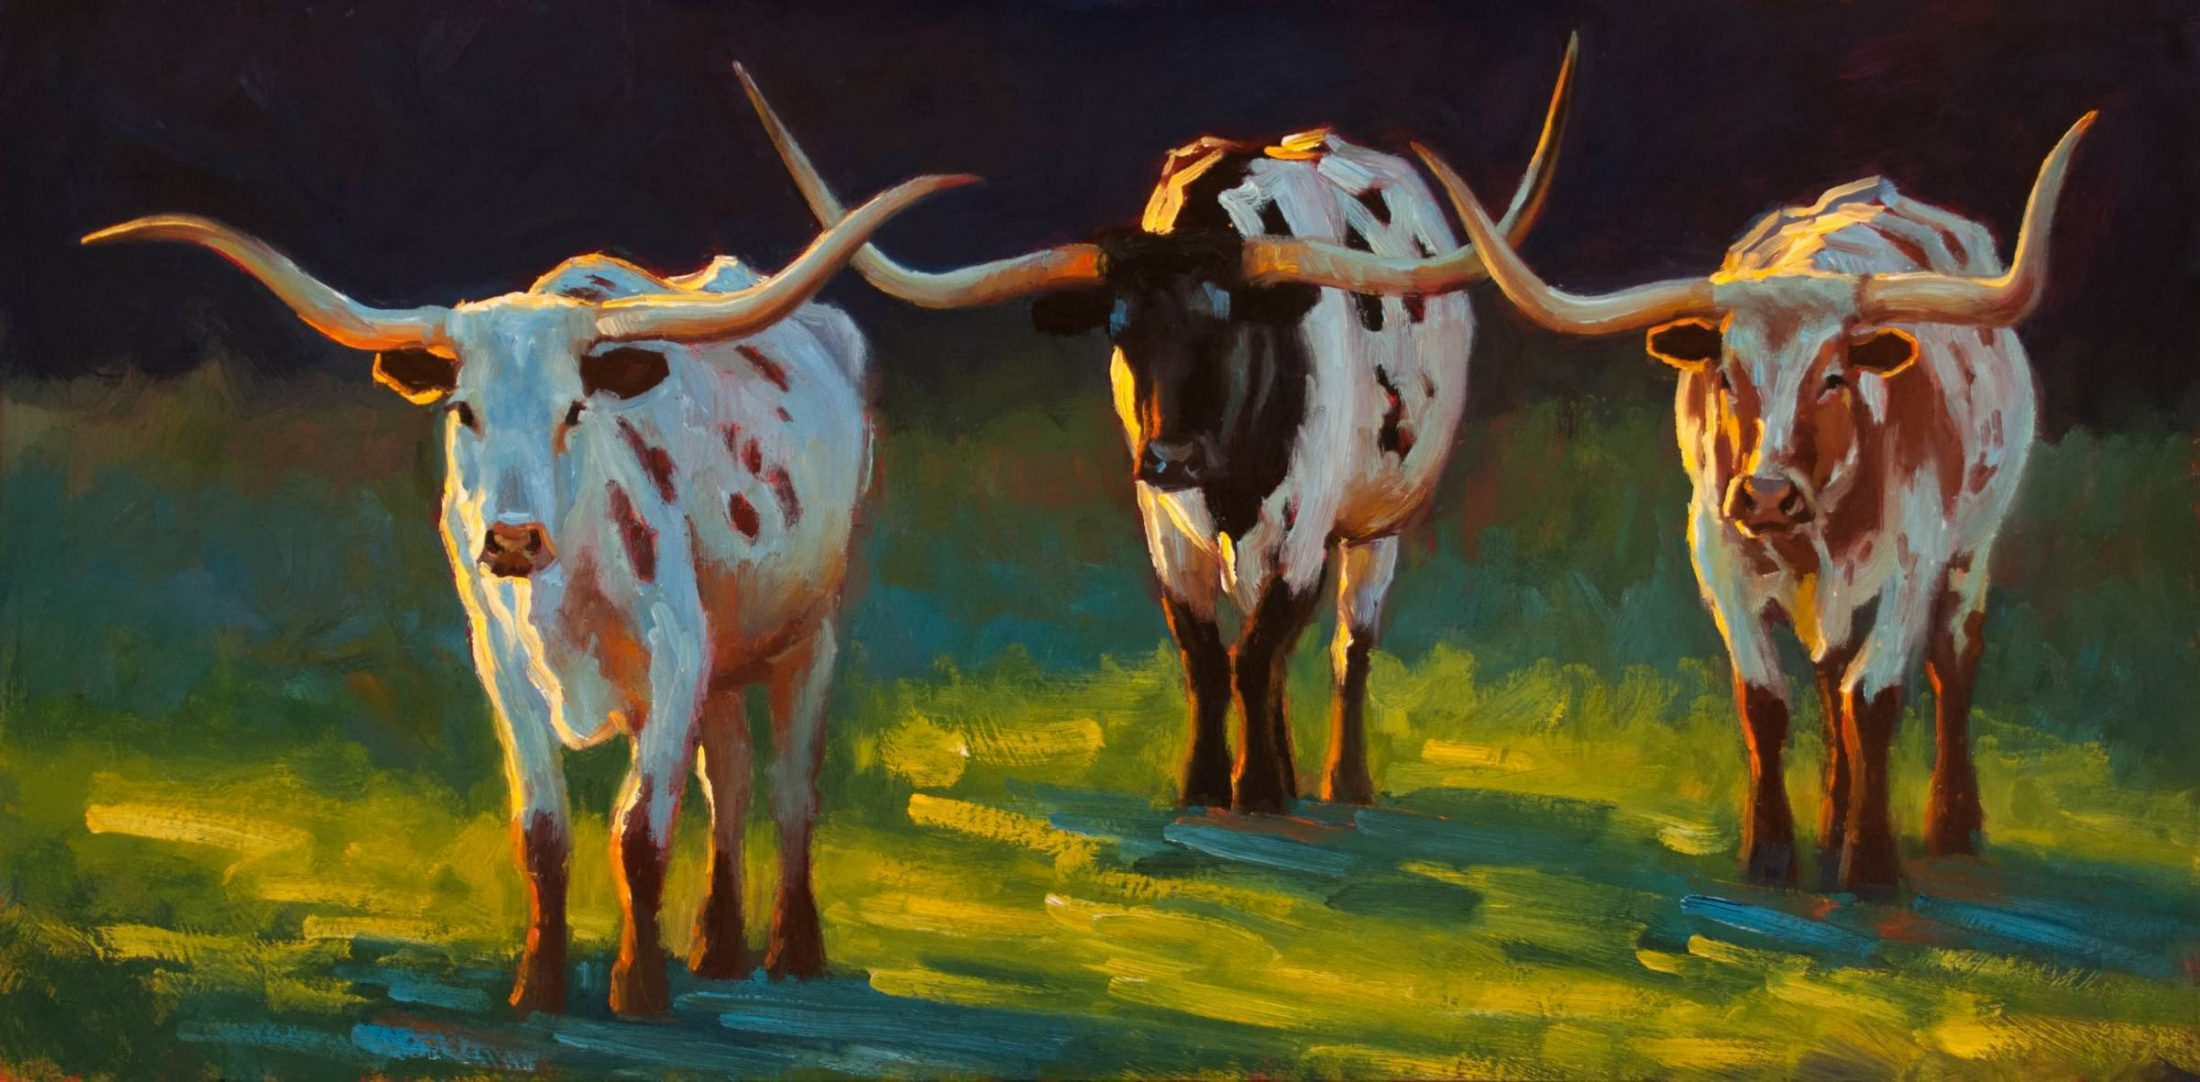 Crossed Paths painting of three longhorns by Cheri Christensen